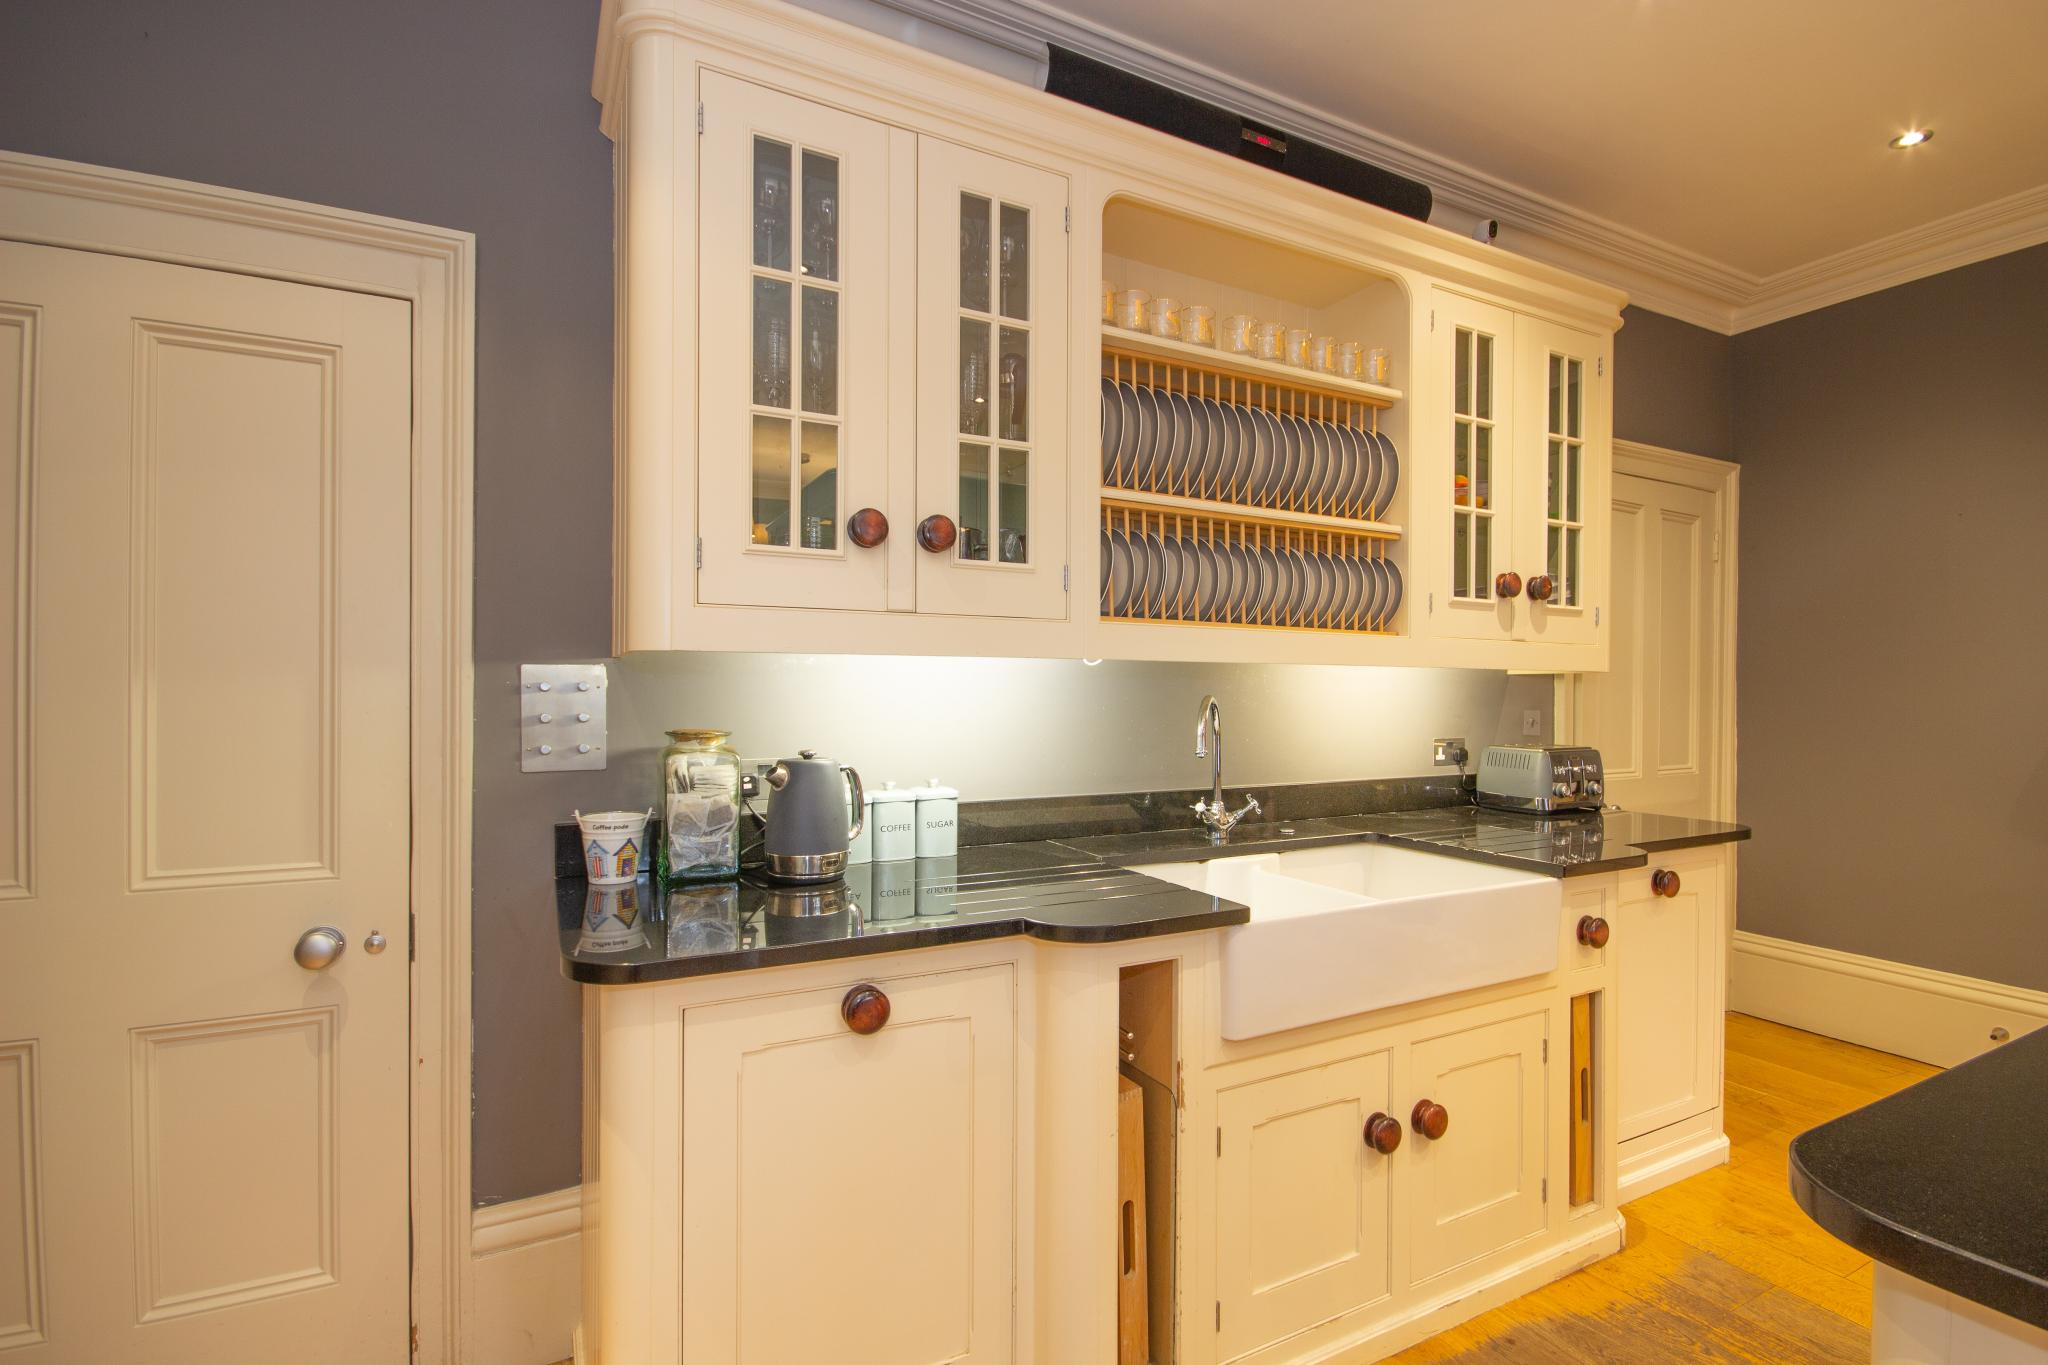 used kitchen islands wow opp 163 150k mark wilkinson cooks used kitchen island boot room sub zero miele 953